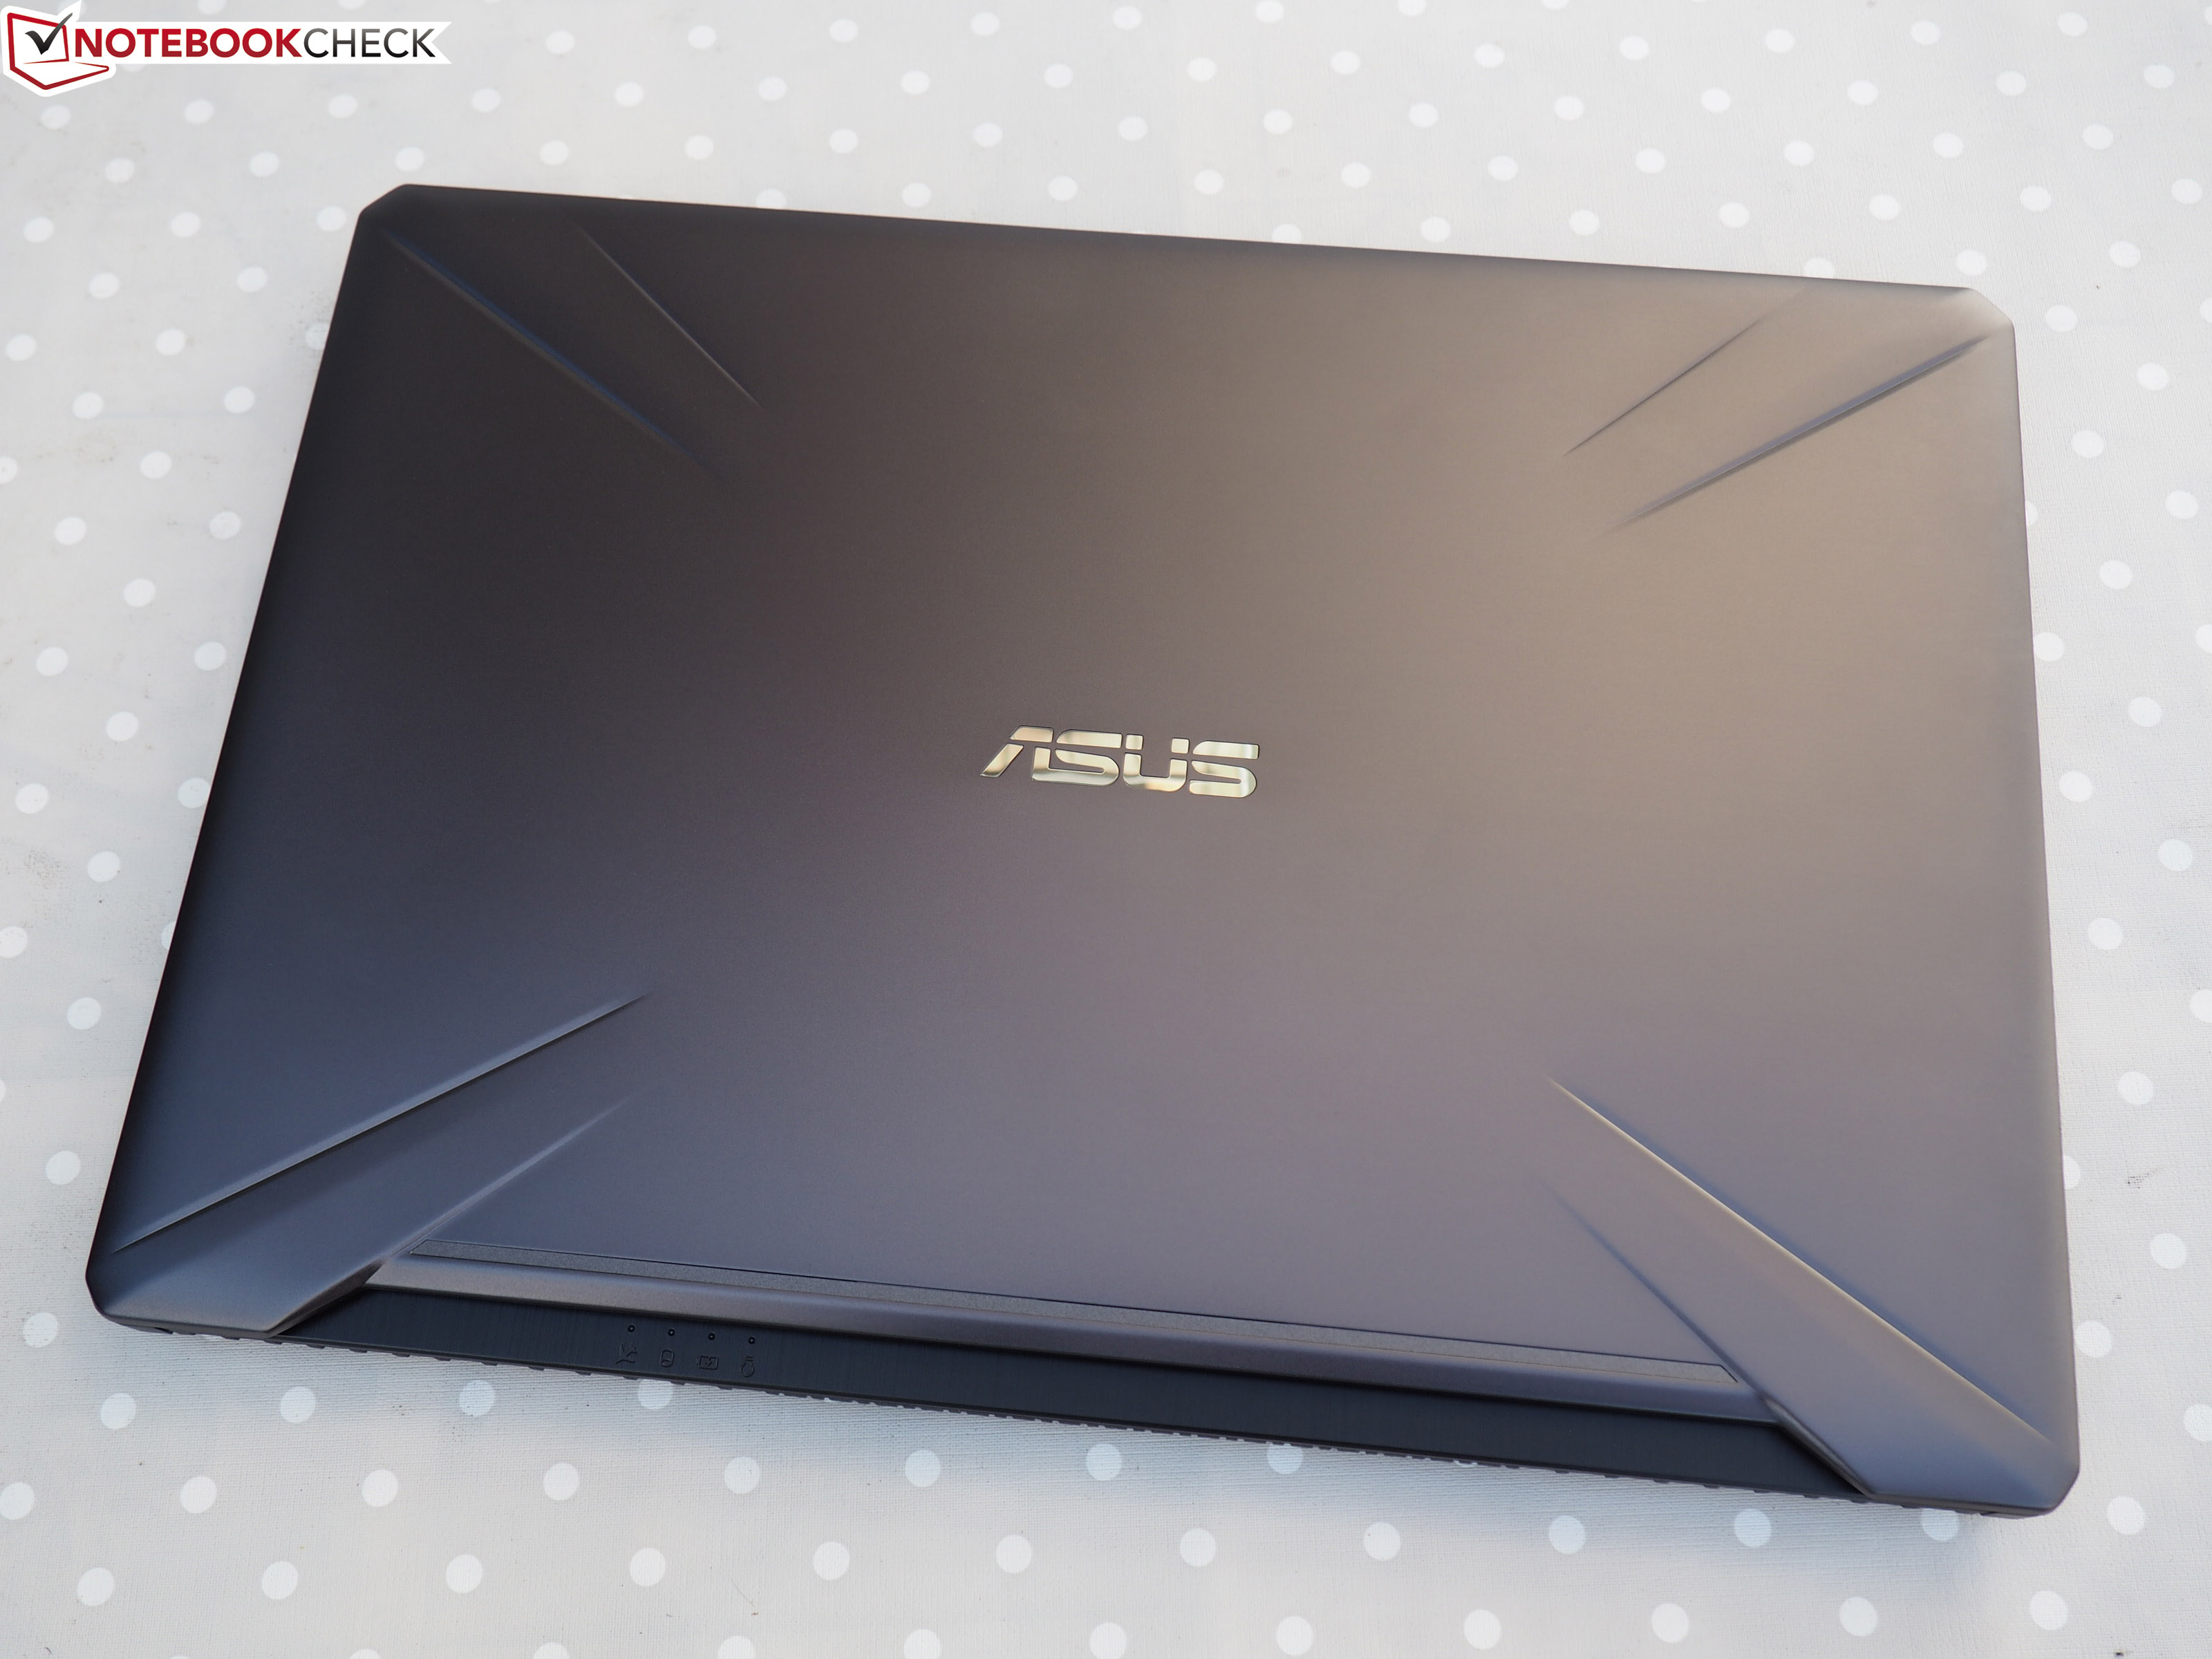 Asus TUF FX705GM (i7-8750H, GTX 1060, FHD) Laptop Review